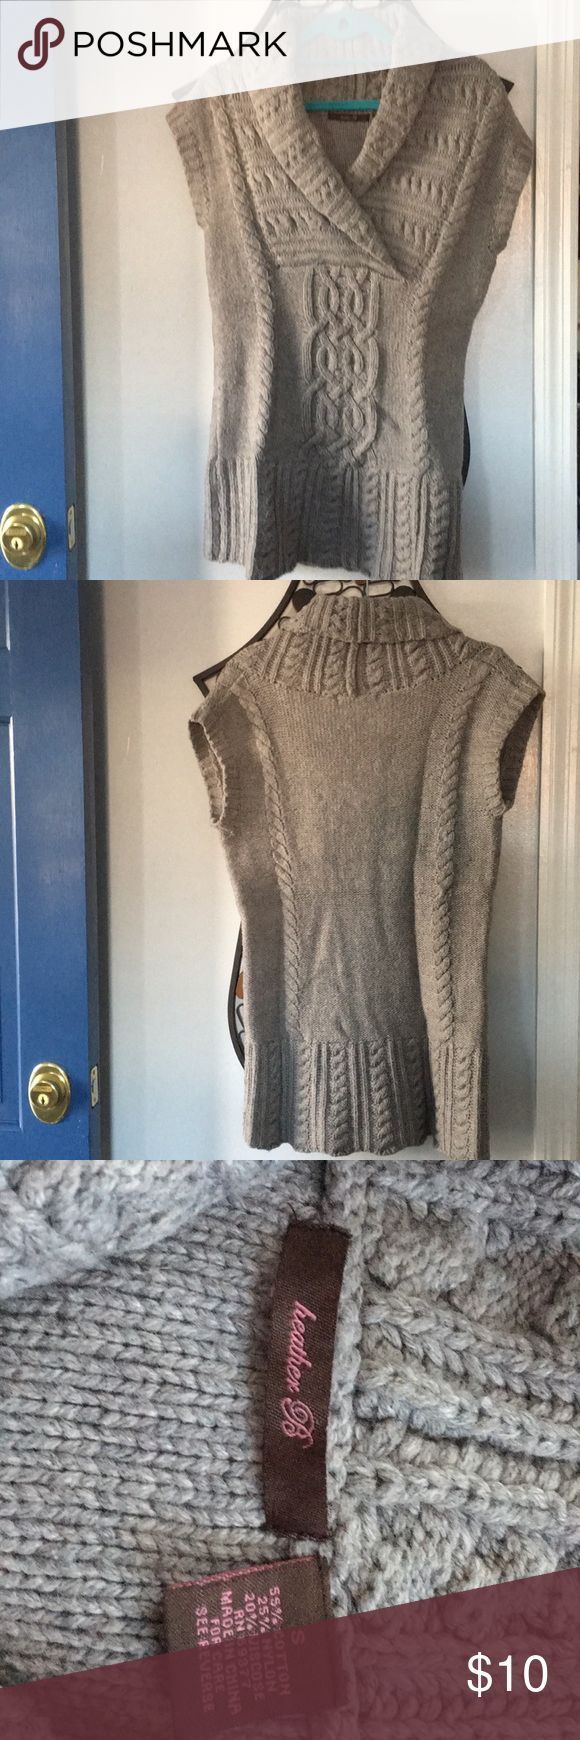 Grey Sweater sz S Grey sleeveless fitted sweater, size small, by heather B.  Hip length Great over long sleeve tee with leggings or jeans heather B Sweaters V-Necks